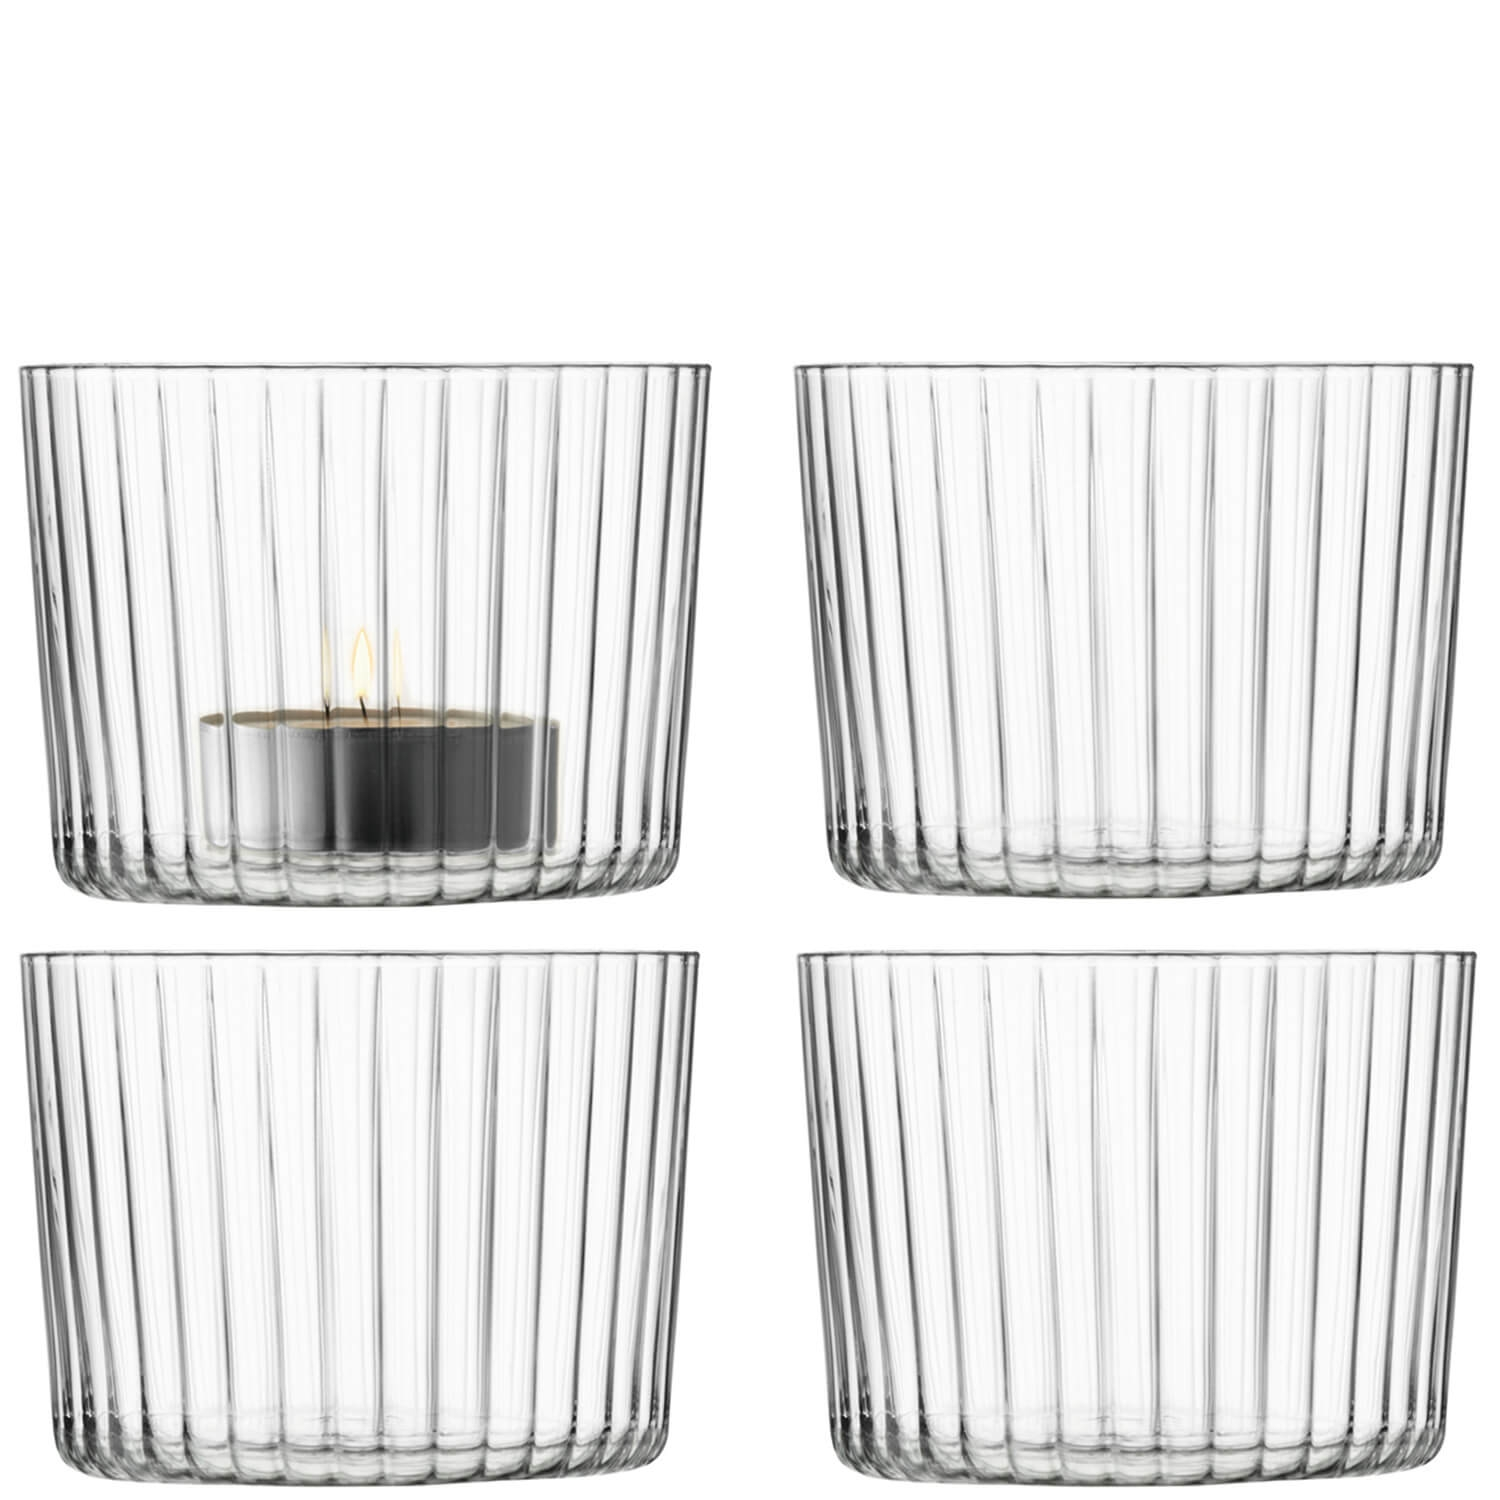 Image of LSA, Gio Line, Tealight Holder, Clear, Set of 4